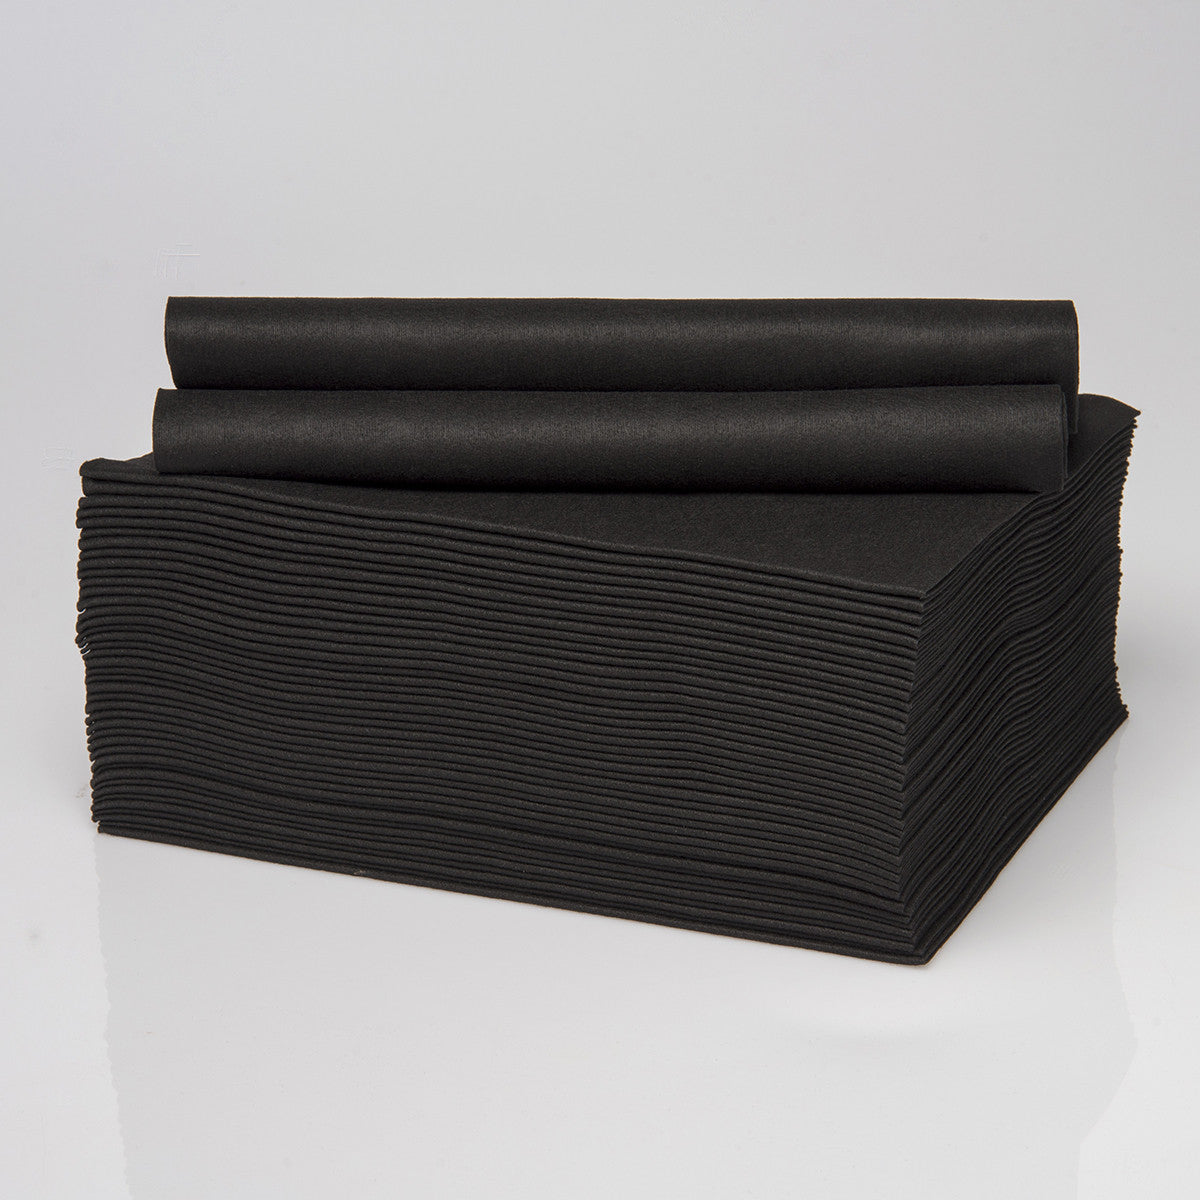 Envirodry Black Towels for Hair & Beauty Industry - Carton of 600 towels